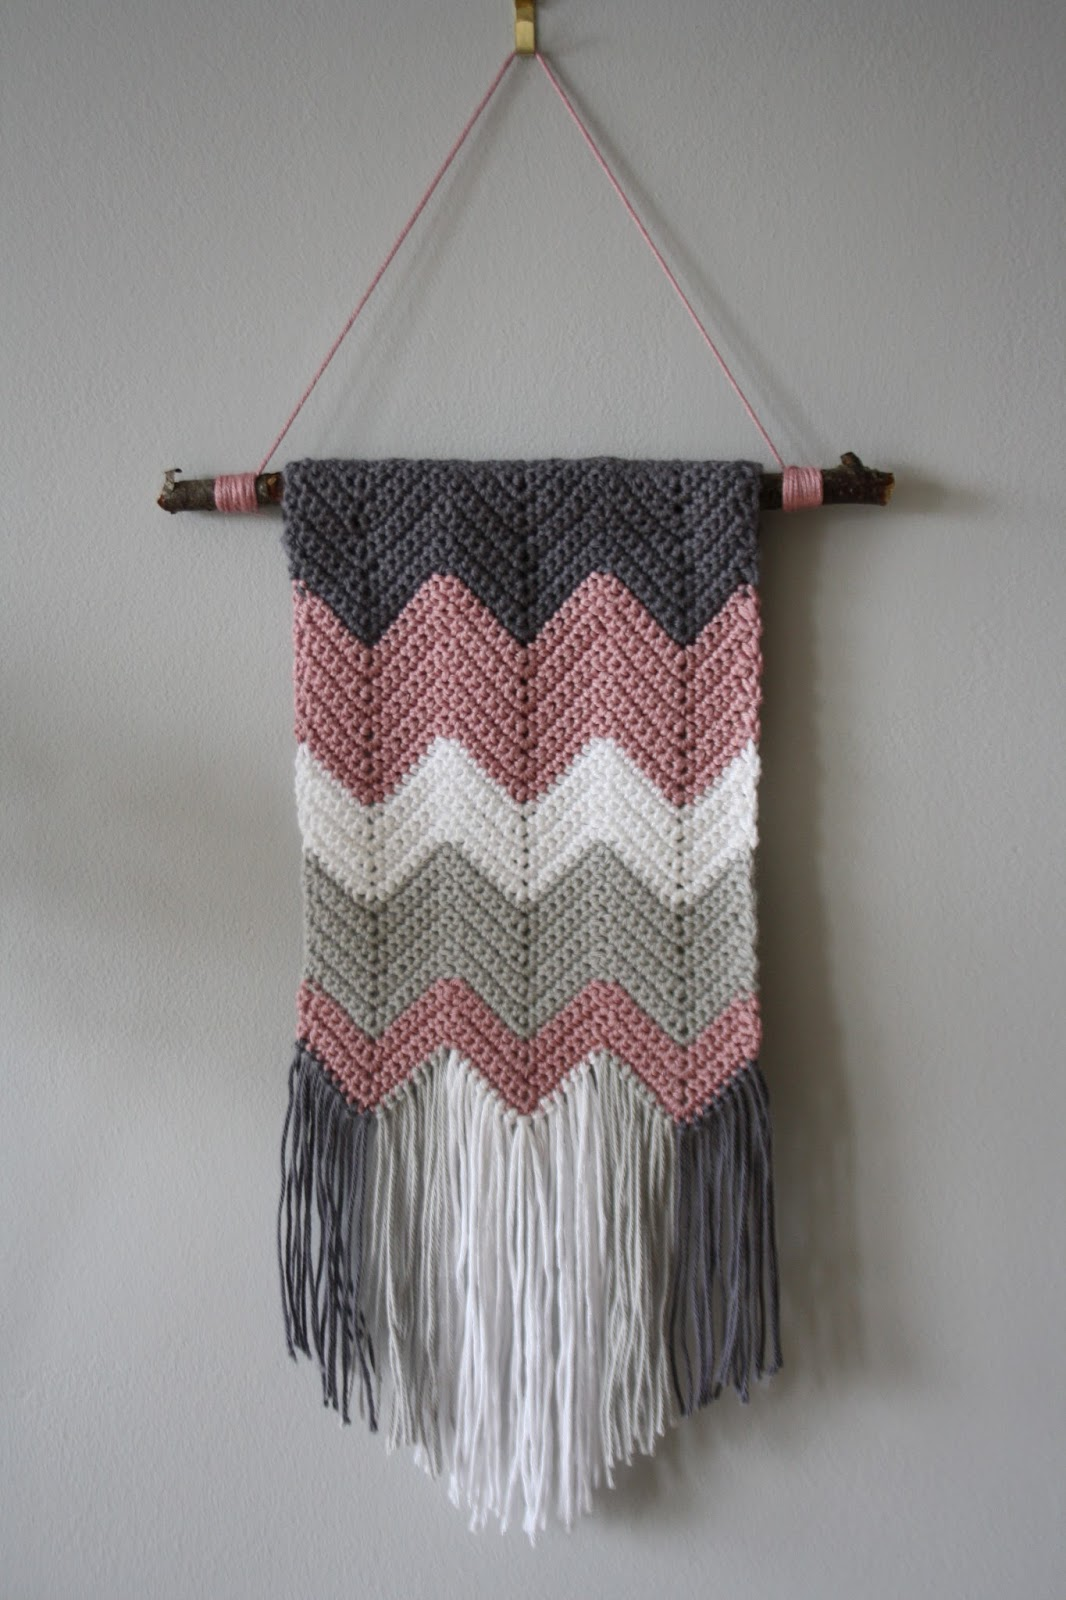 Tales from a happy house.: A Crocheted Zigzag Wall Hanging